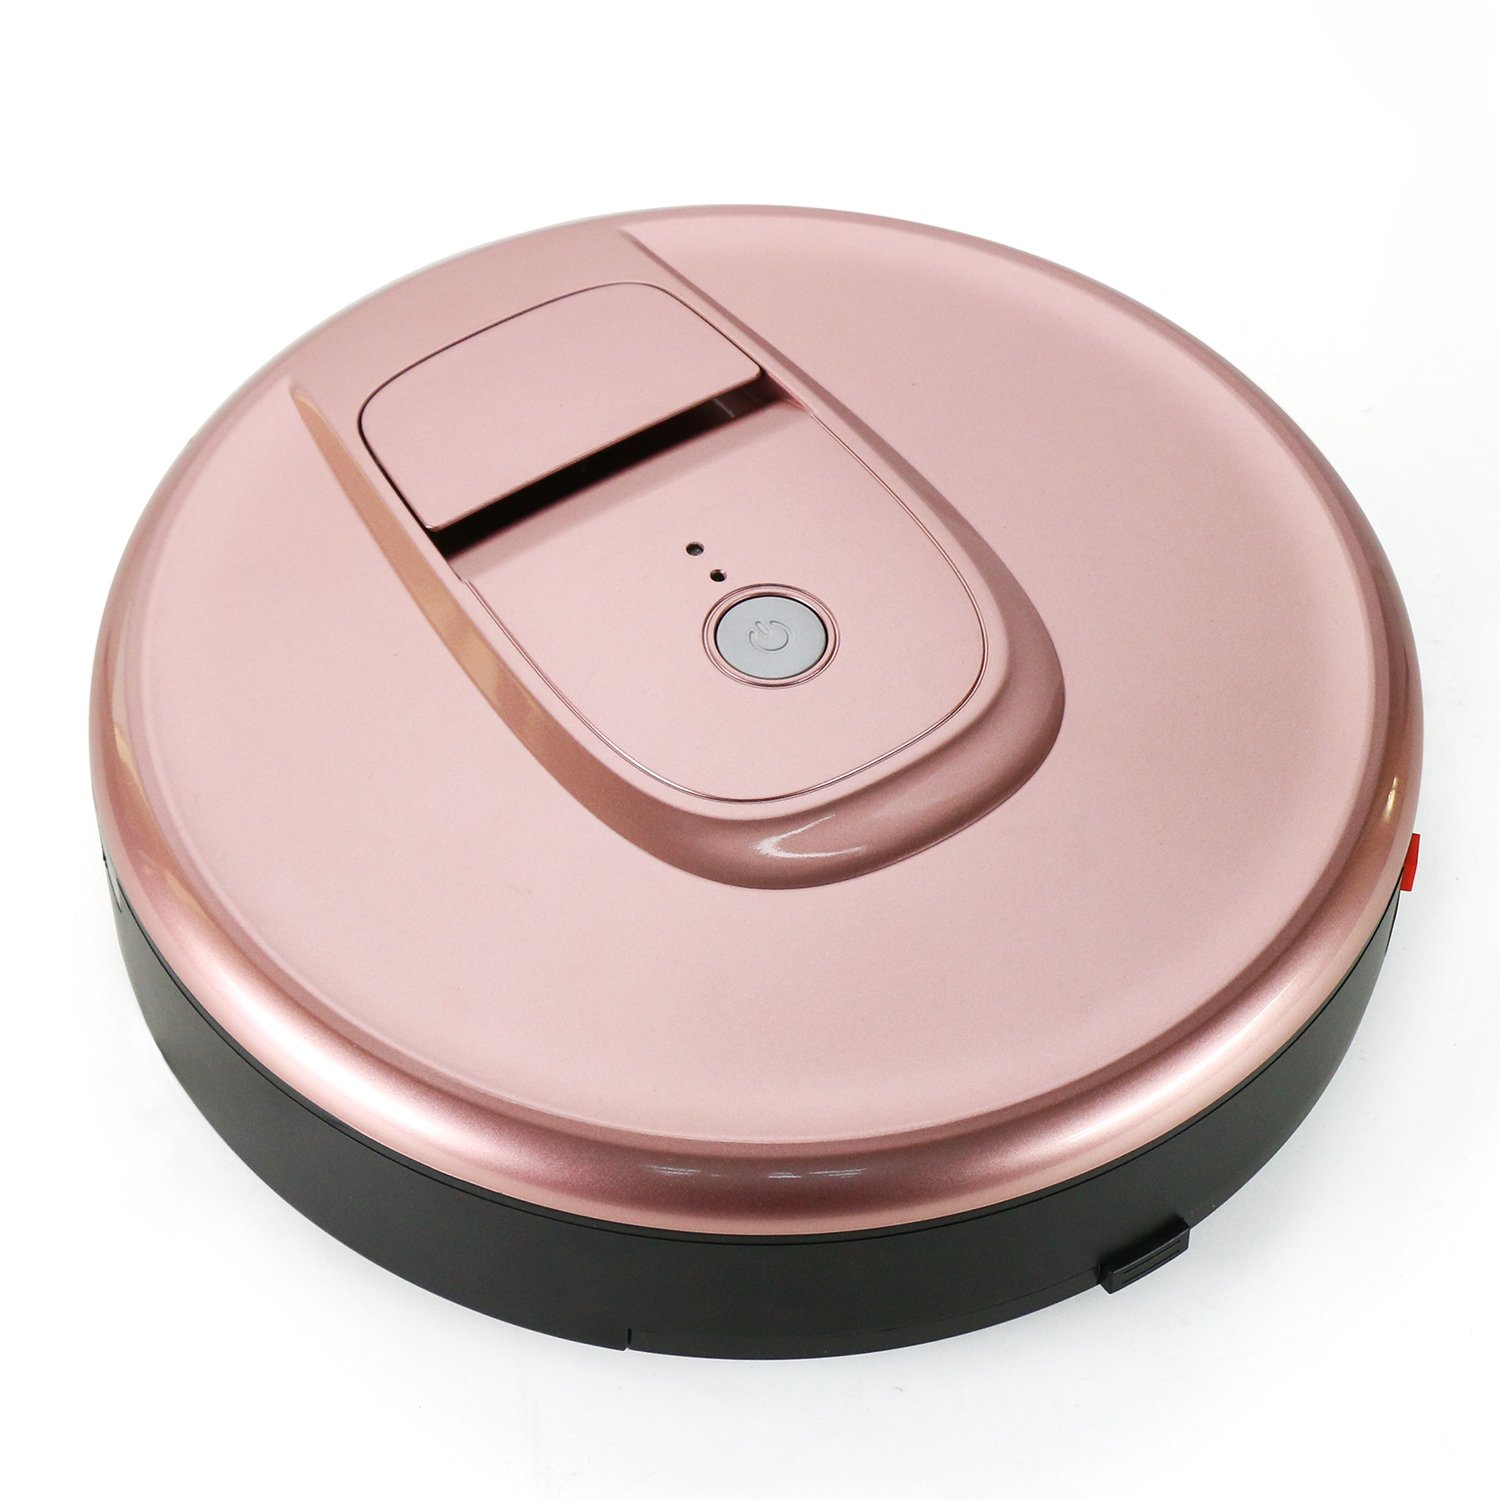 EVERTOP Robotic Vaccum Cleaner on Undercoat Carpet Marble Wooden Tile Floor has Adittional Round Brush Under the Device for Hair Dirt and Dust Removal (Rose-Gold)